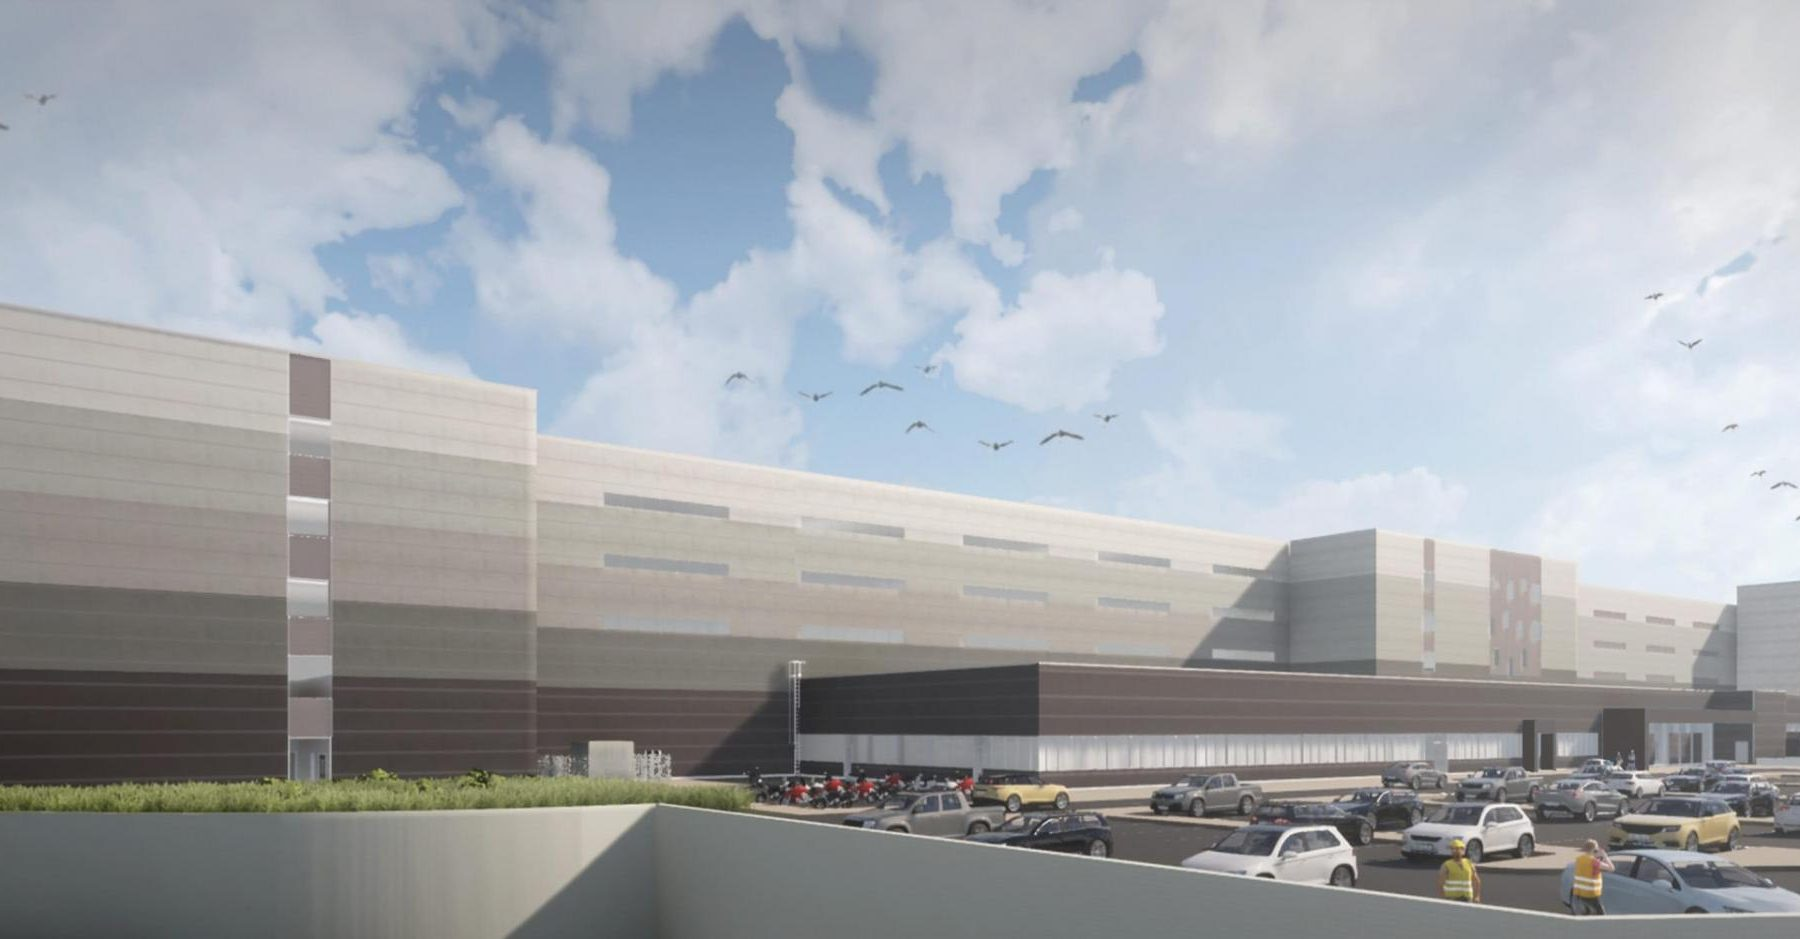 Amazon rumoured to be behind plans for mega-warehouse…